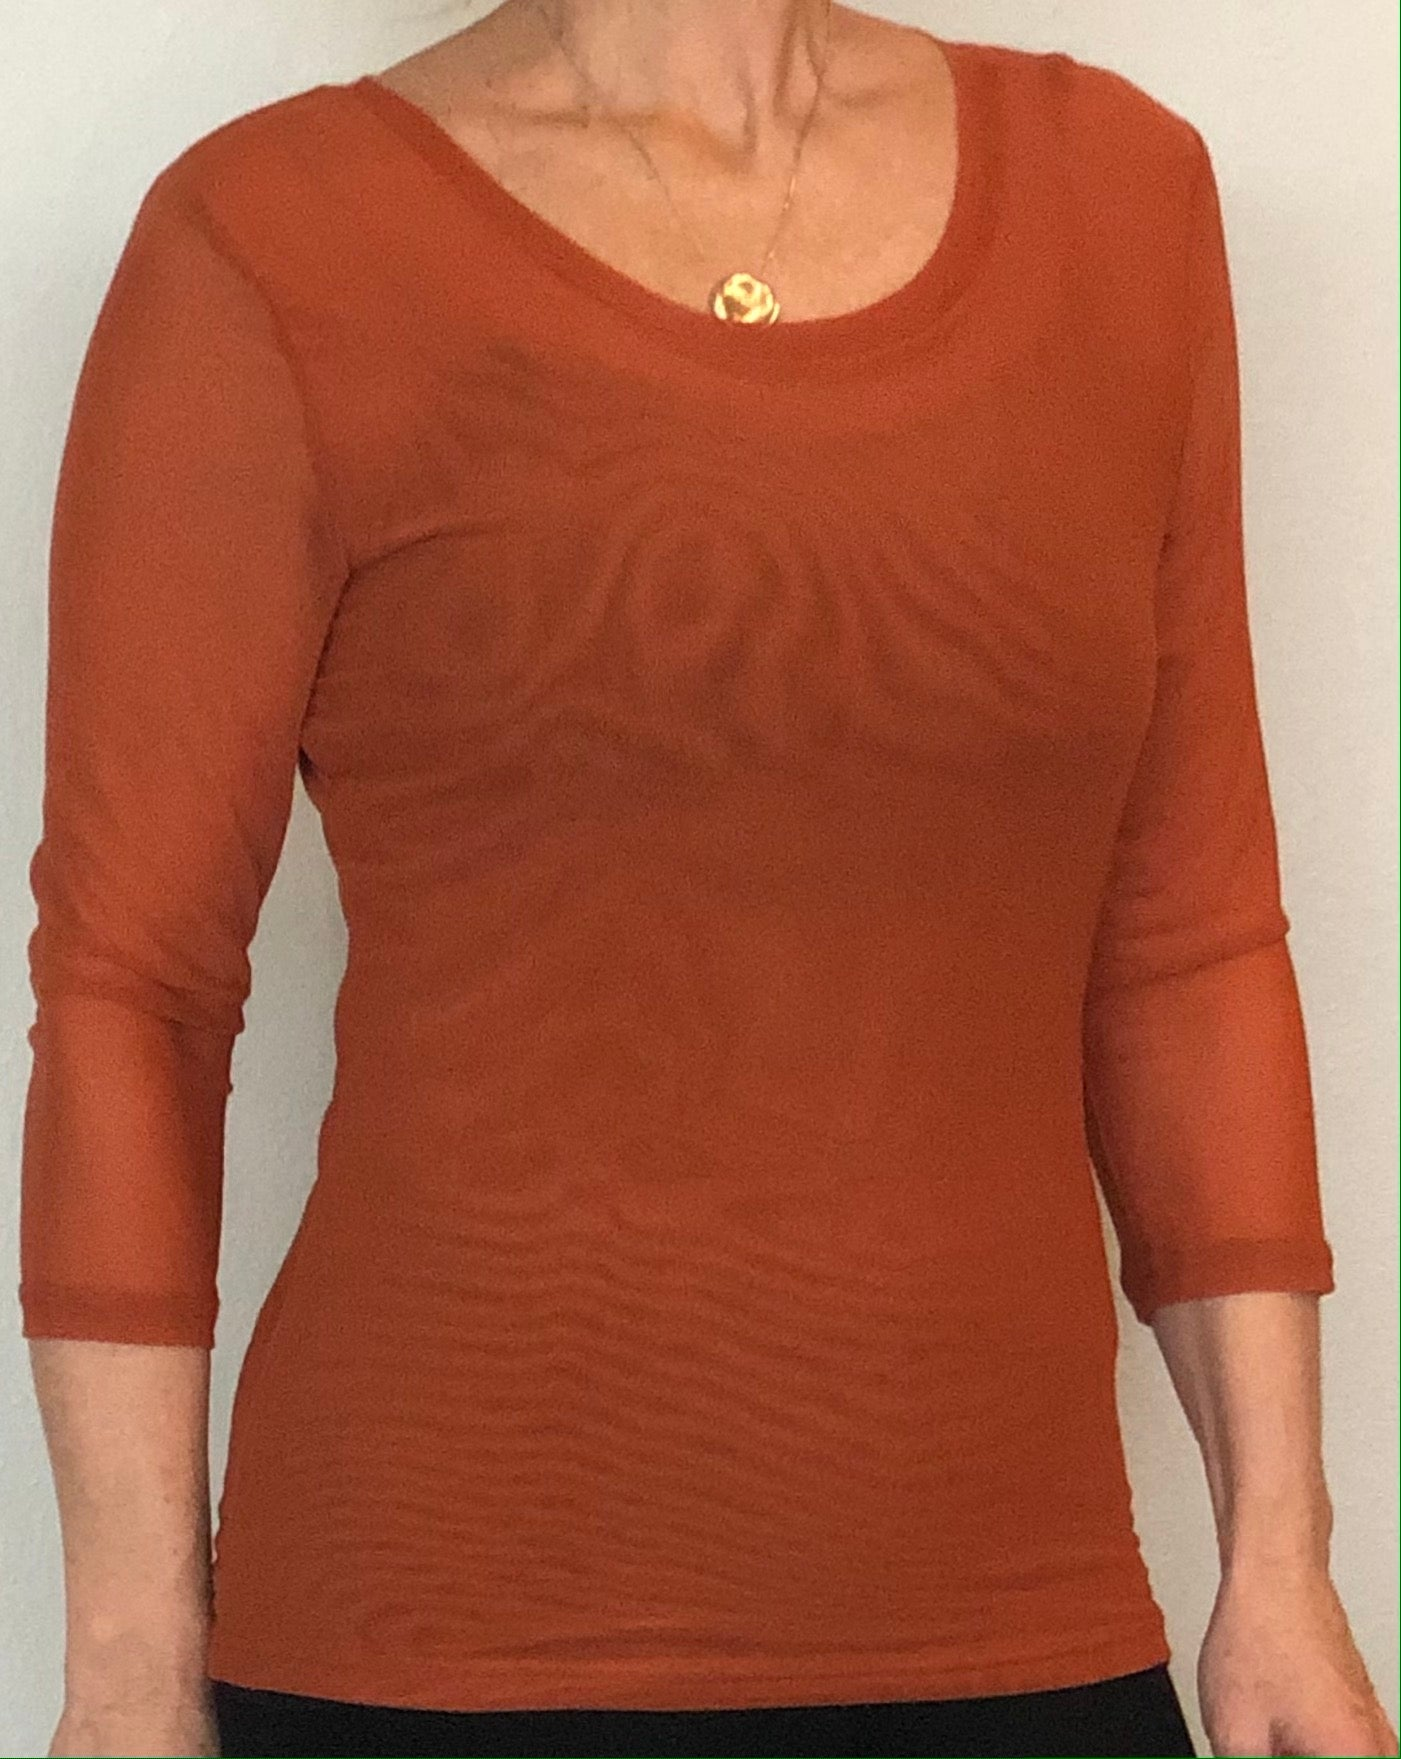 Adore - Top - rust color - sheer sleeves